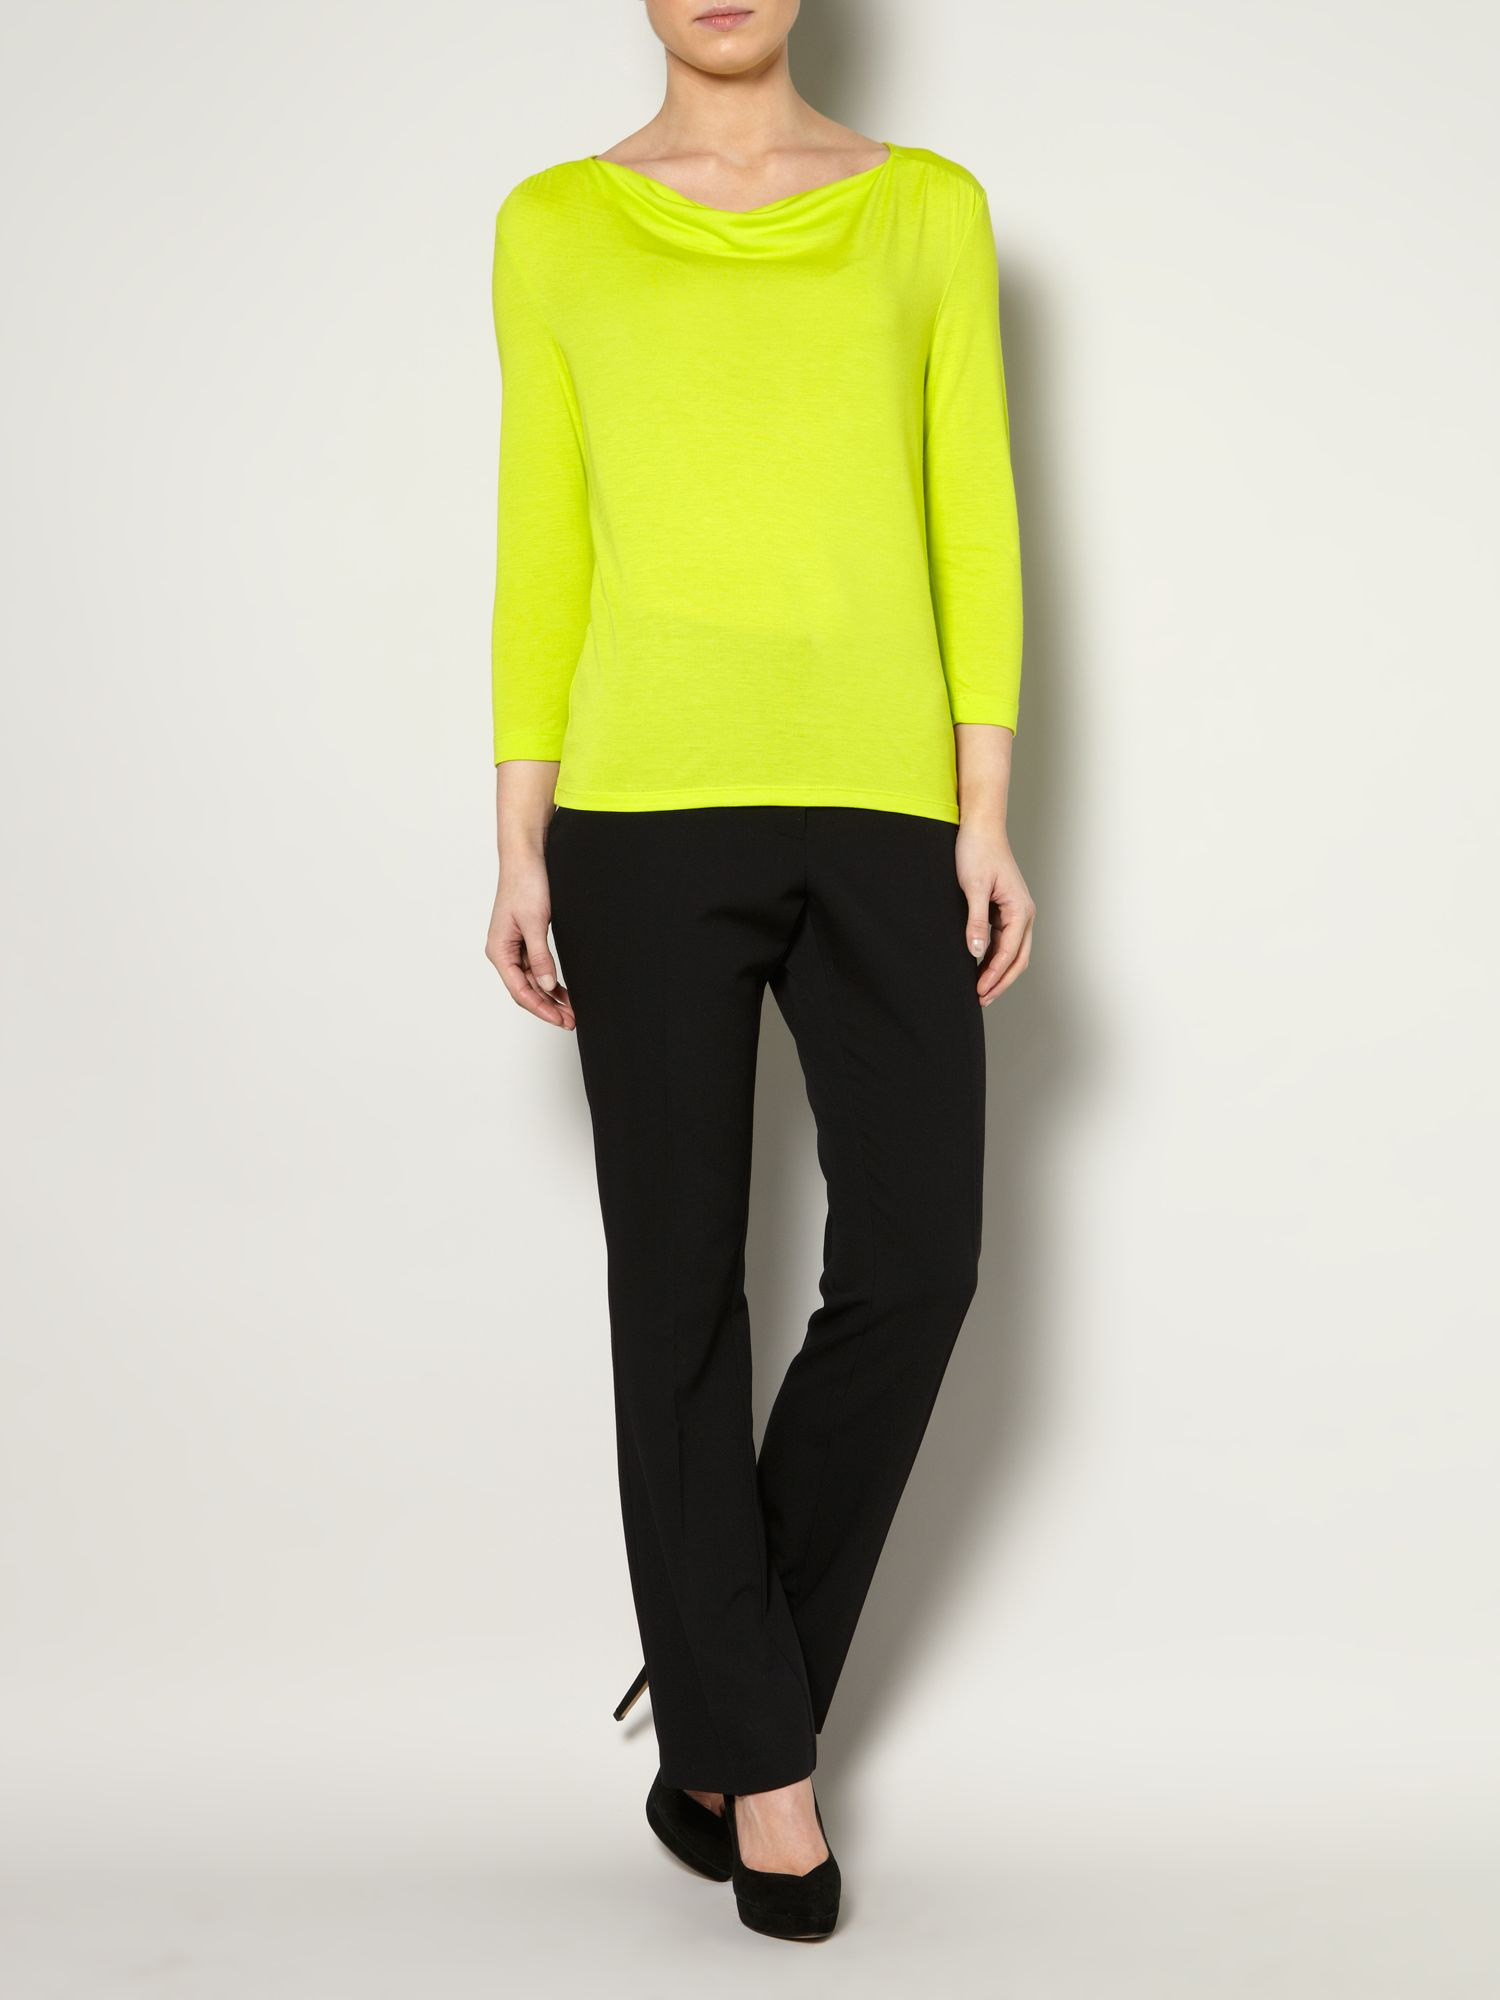 Cowl neck jersey top 3/4 sleeve